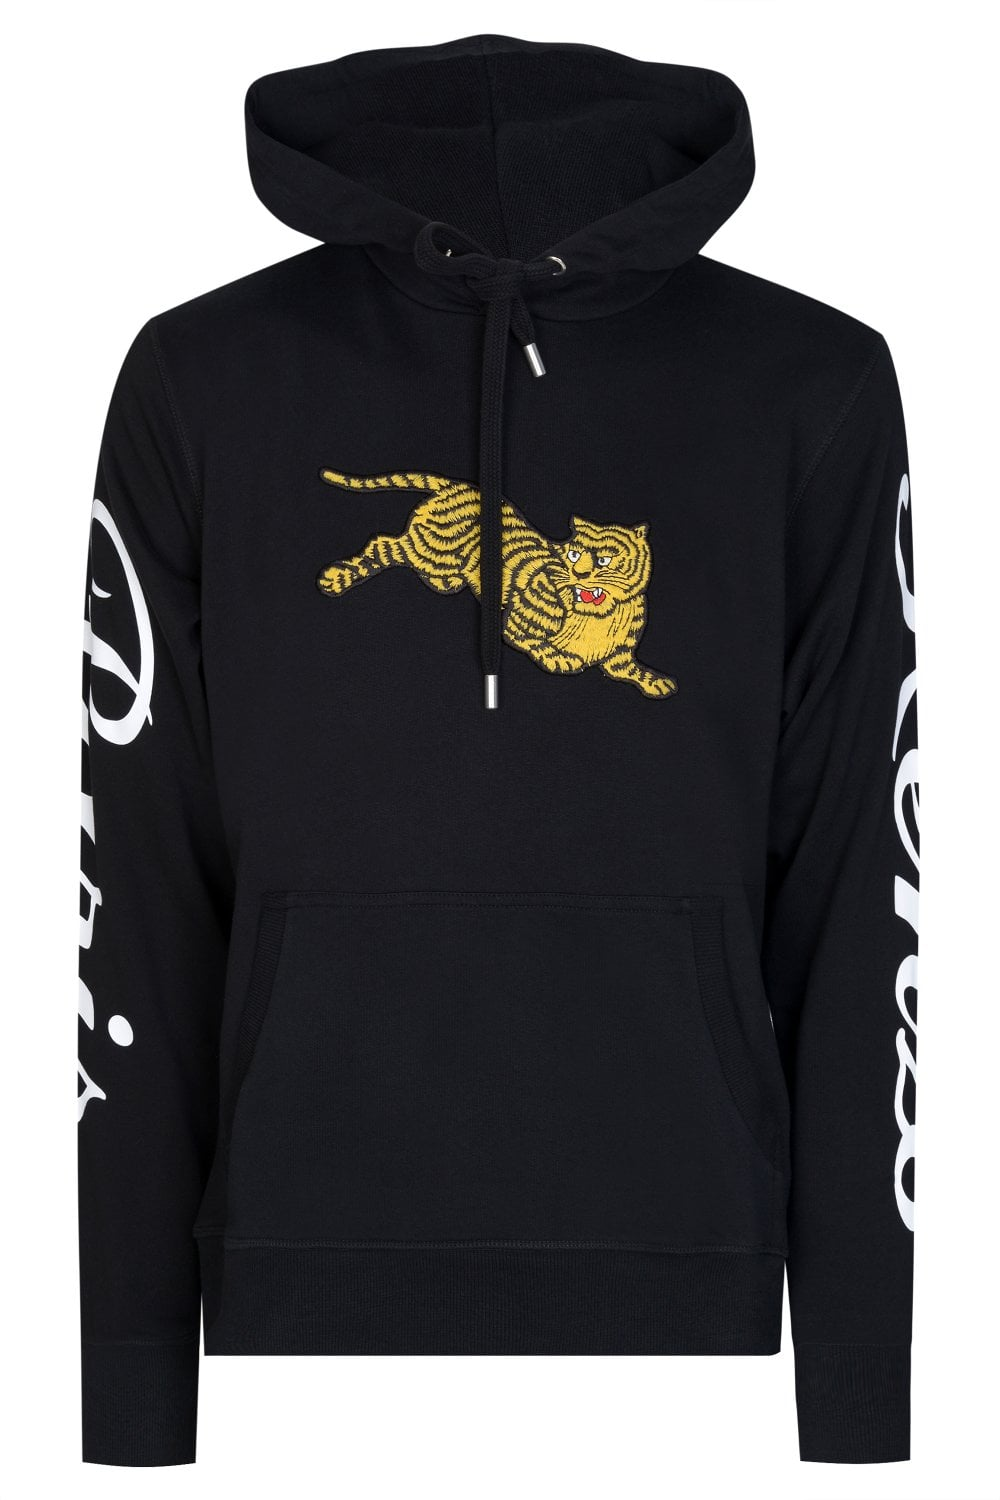 eefdde146 KENZO Kenzo Paris 'Jumping Tiger' Hooded Sweatshirt - Clothing from ...